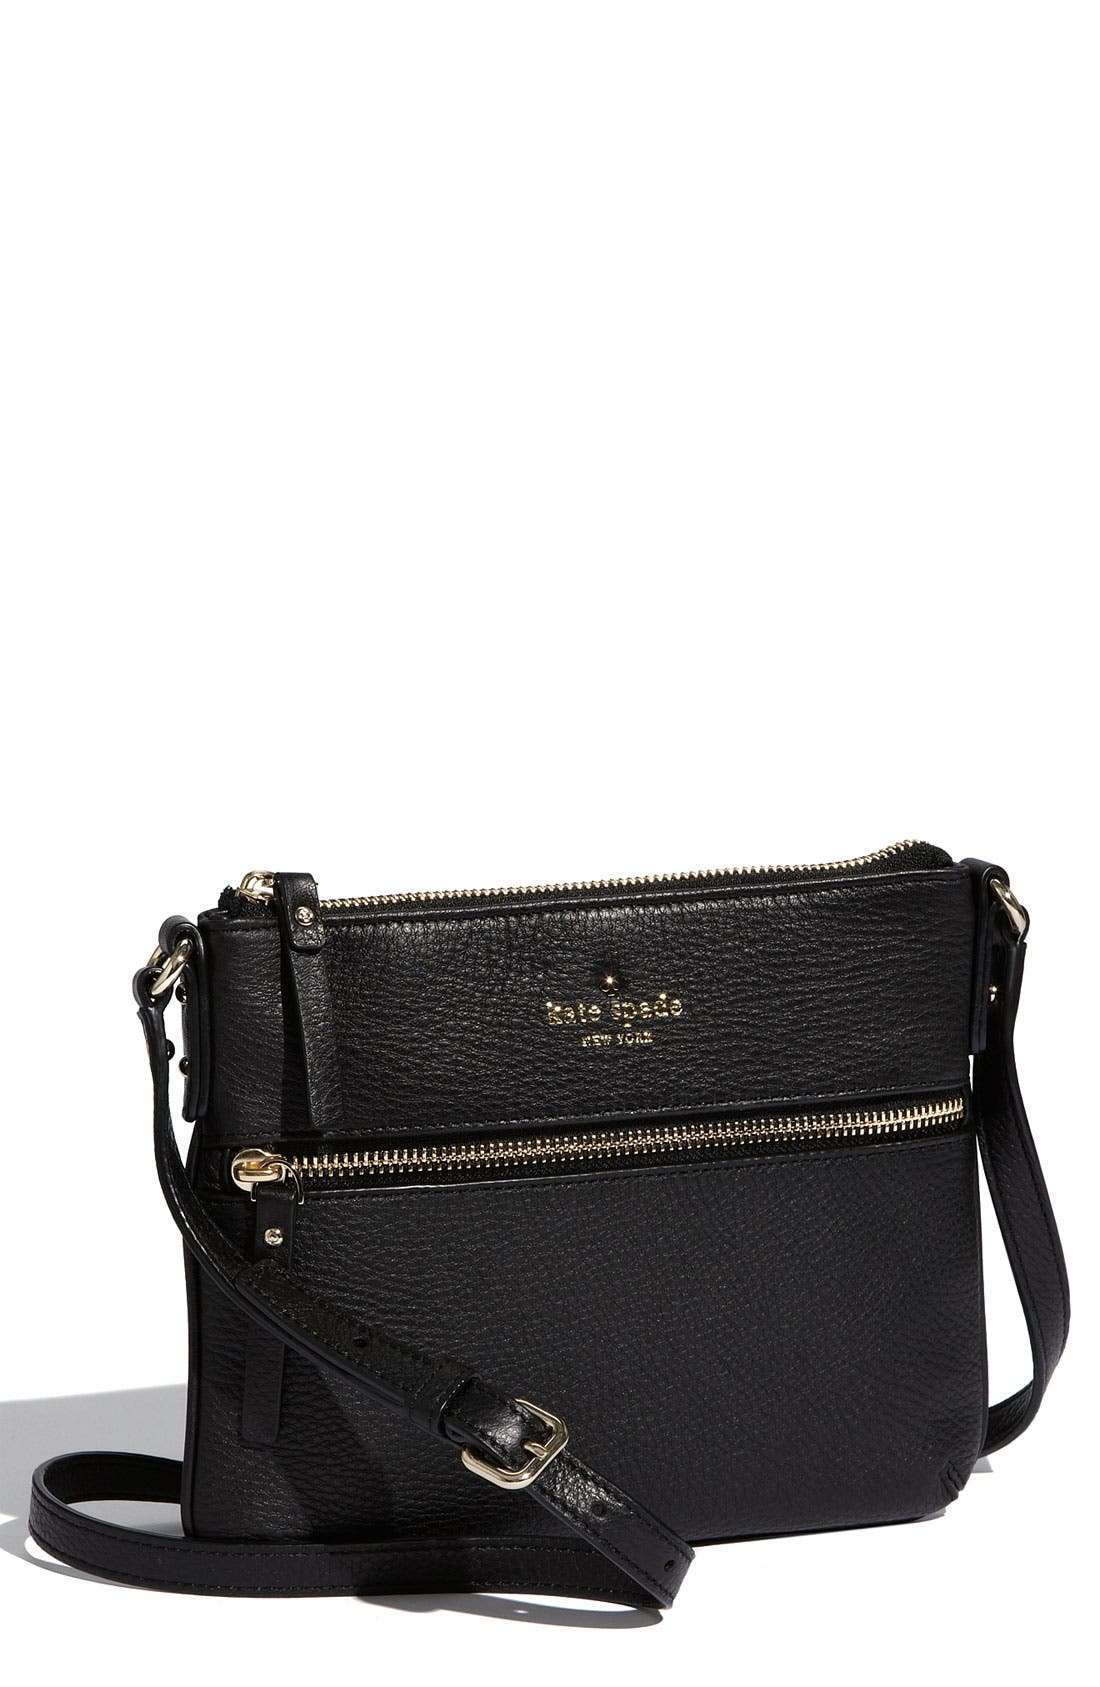 Alternate Image 1 Selected - kate spade new york 'cobble hill - tenley' crossbody bag